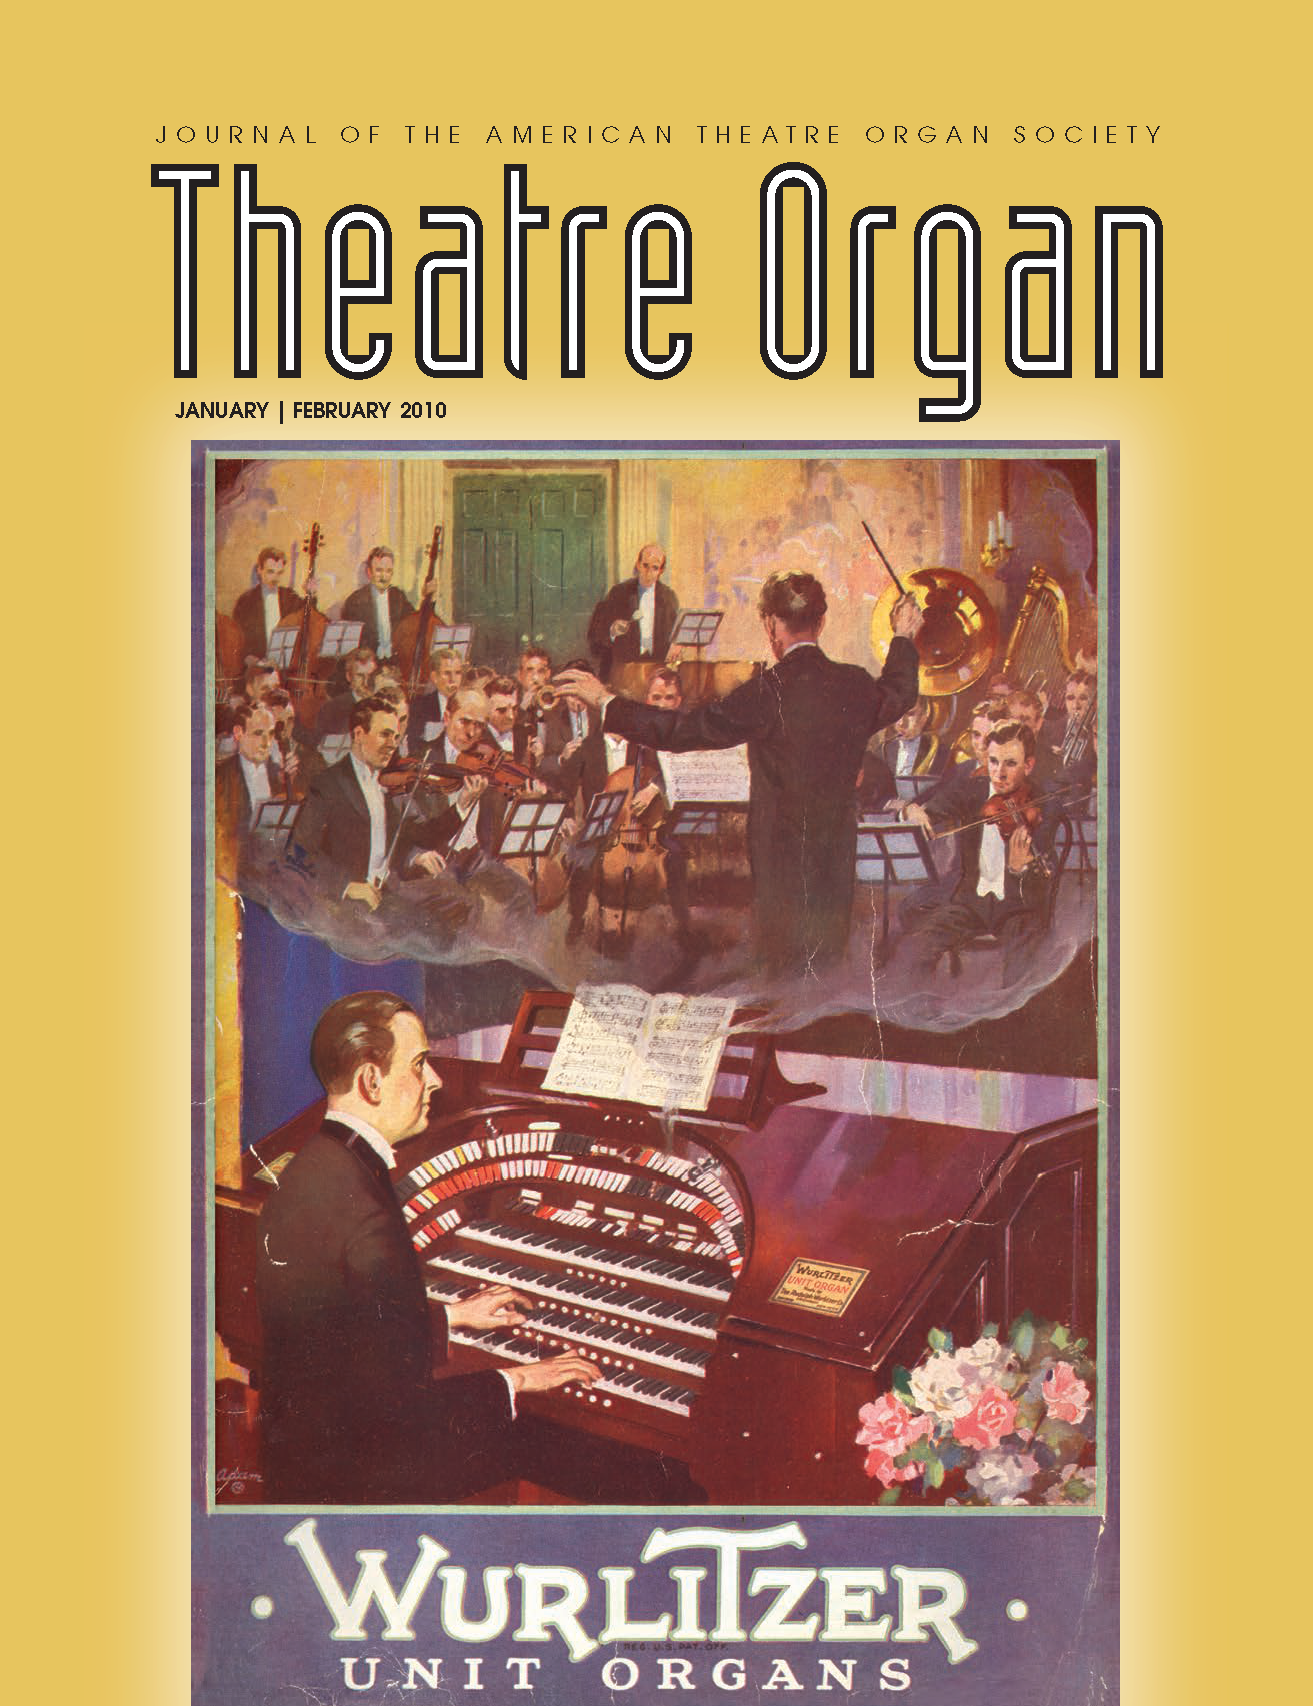 Theatre Organ, January - February 2010, Volume 52, Number 1